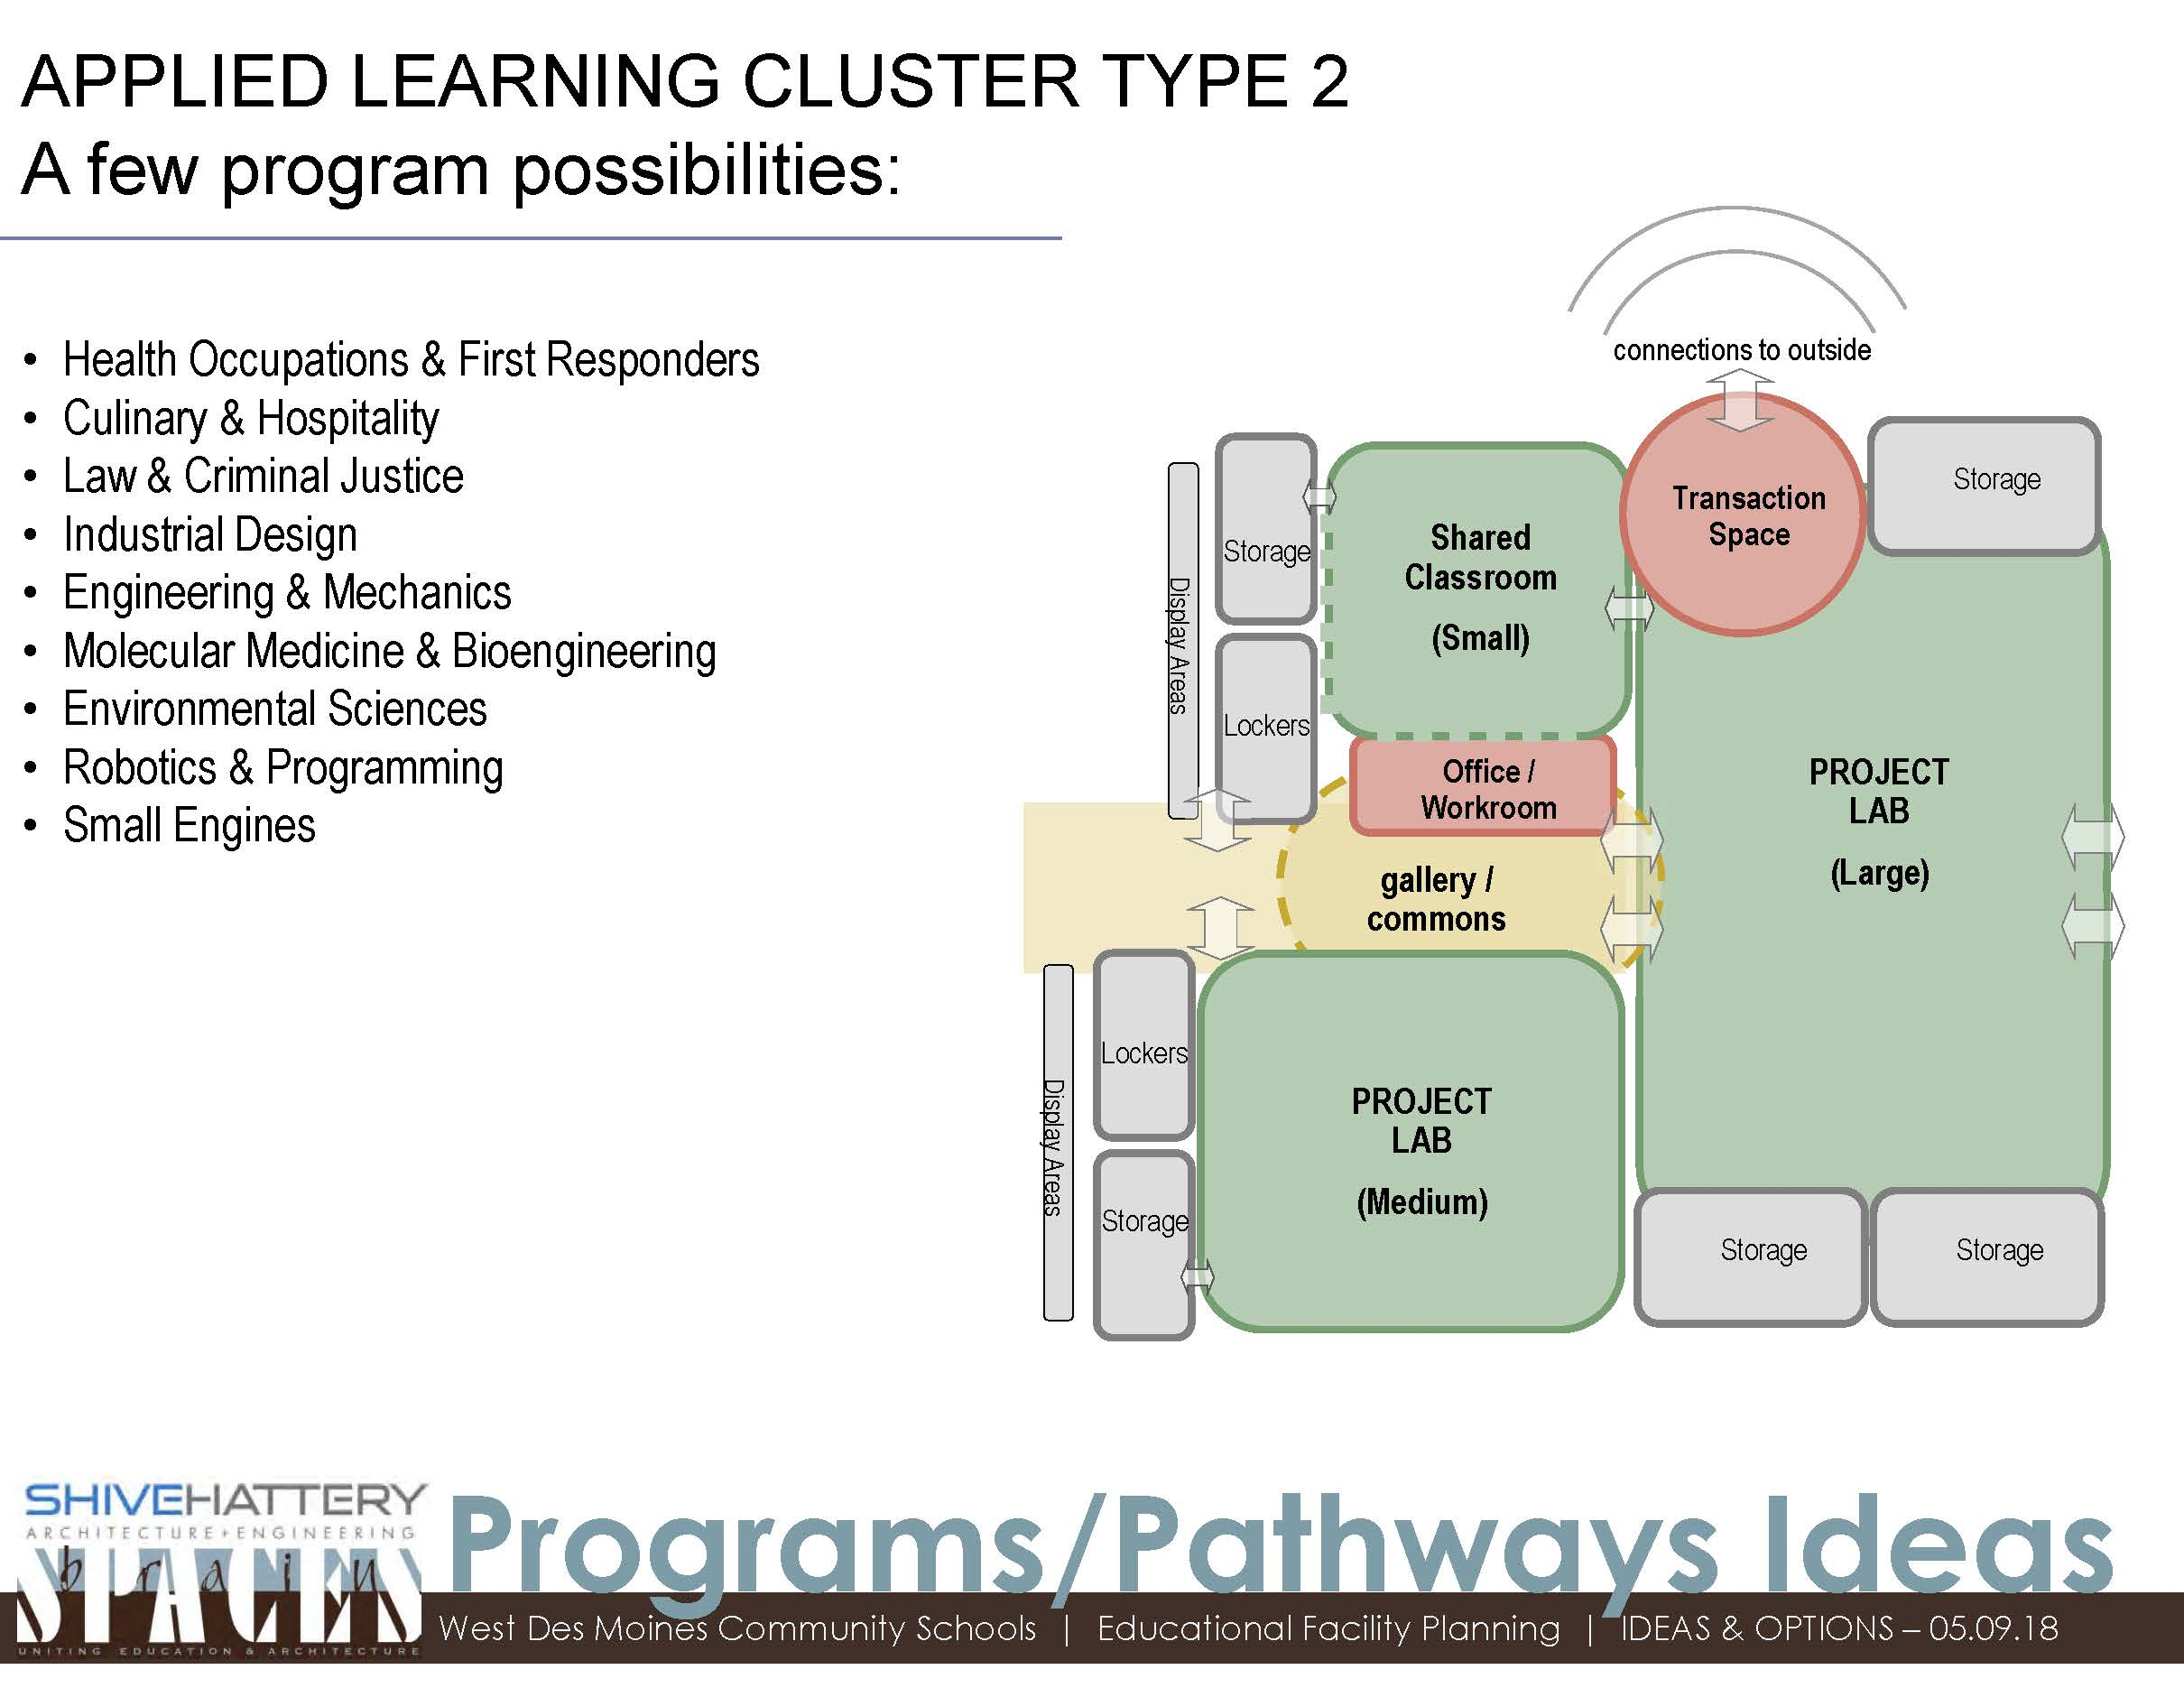 Applied Learning Cluster type 2  This graphic indicates program options that would require a combination of small to large spaces. Flexibility in adjusting the size of each space would allow for the greatest number of configurations based on programs offered.   Click on the graphic to view full image.